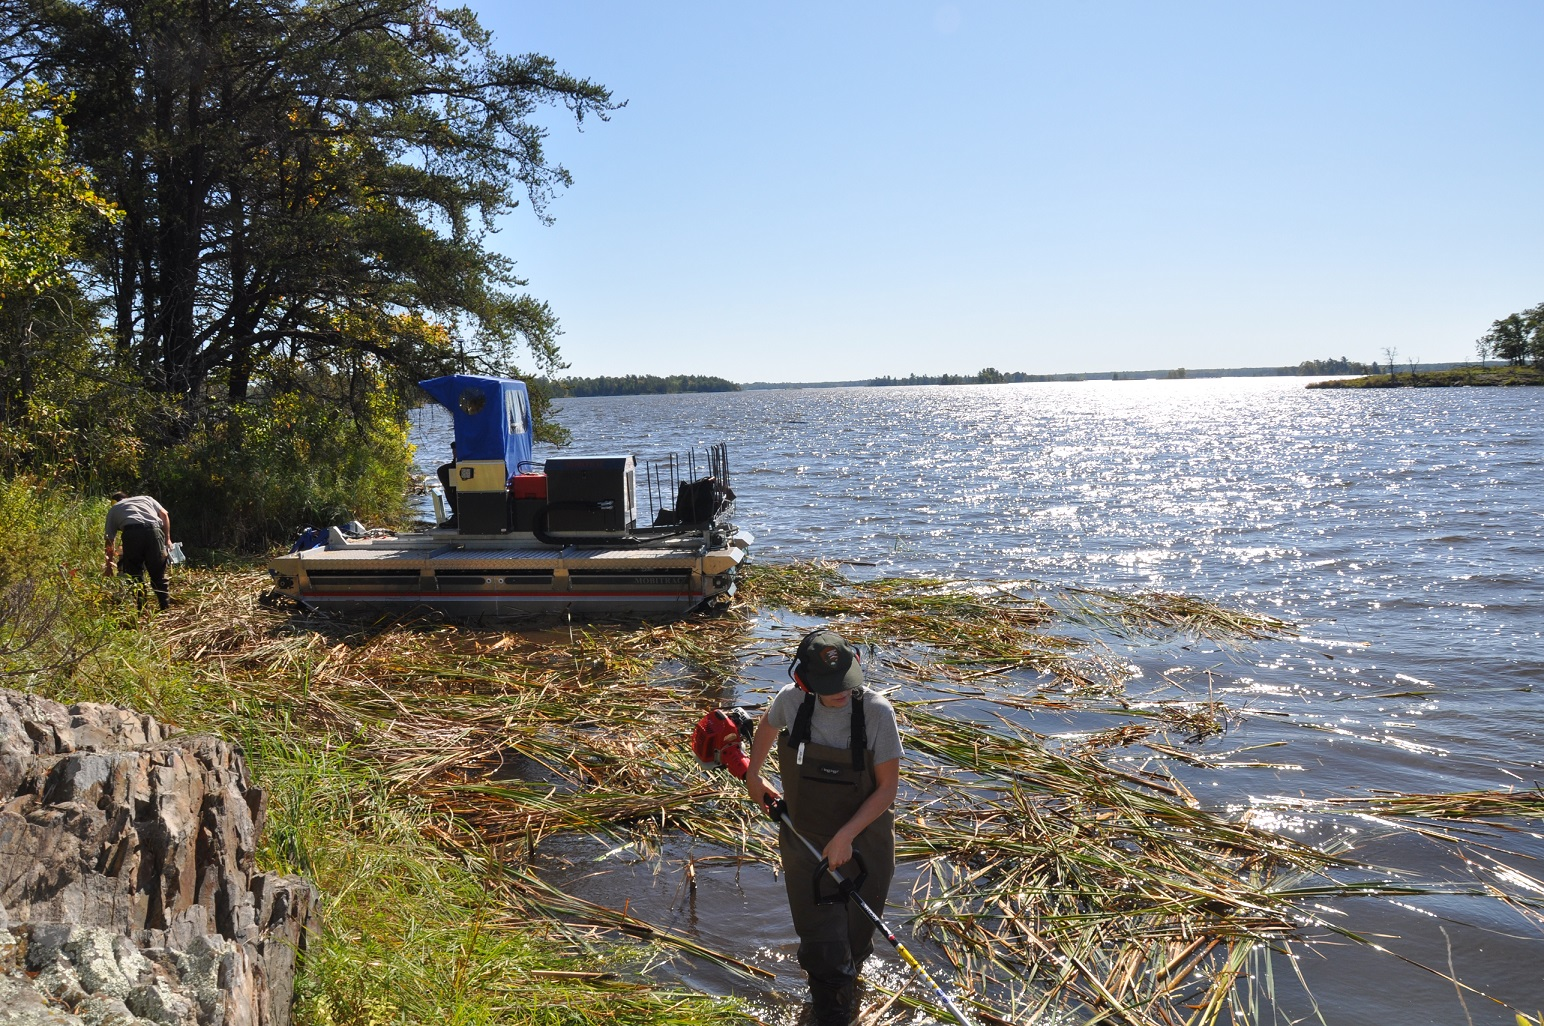 Two staff members use trimmers to cut down cattails. A pontoon like boat moored on the shoreline.  Cattail parts floating in the water.